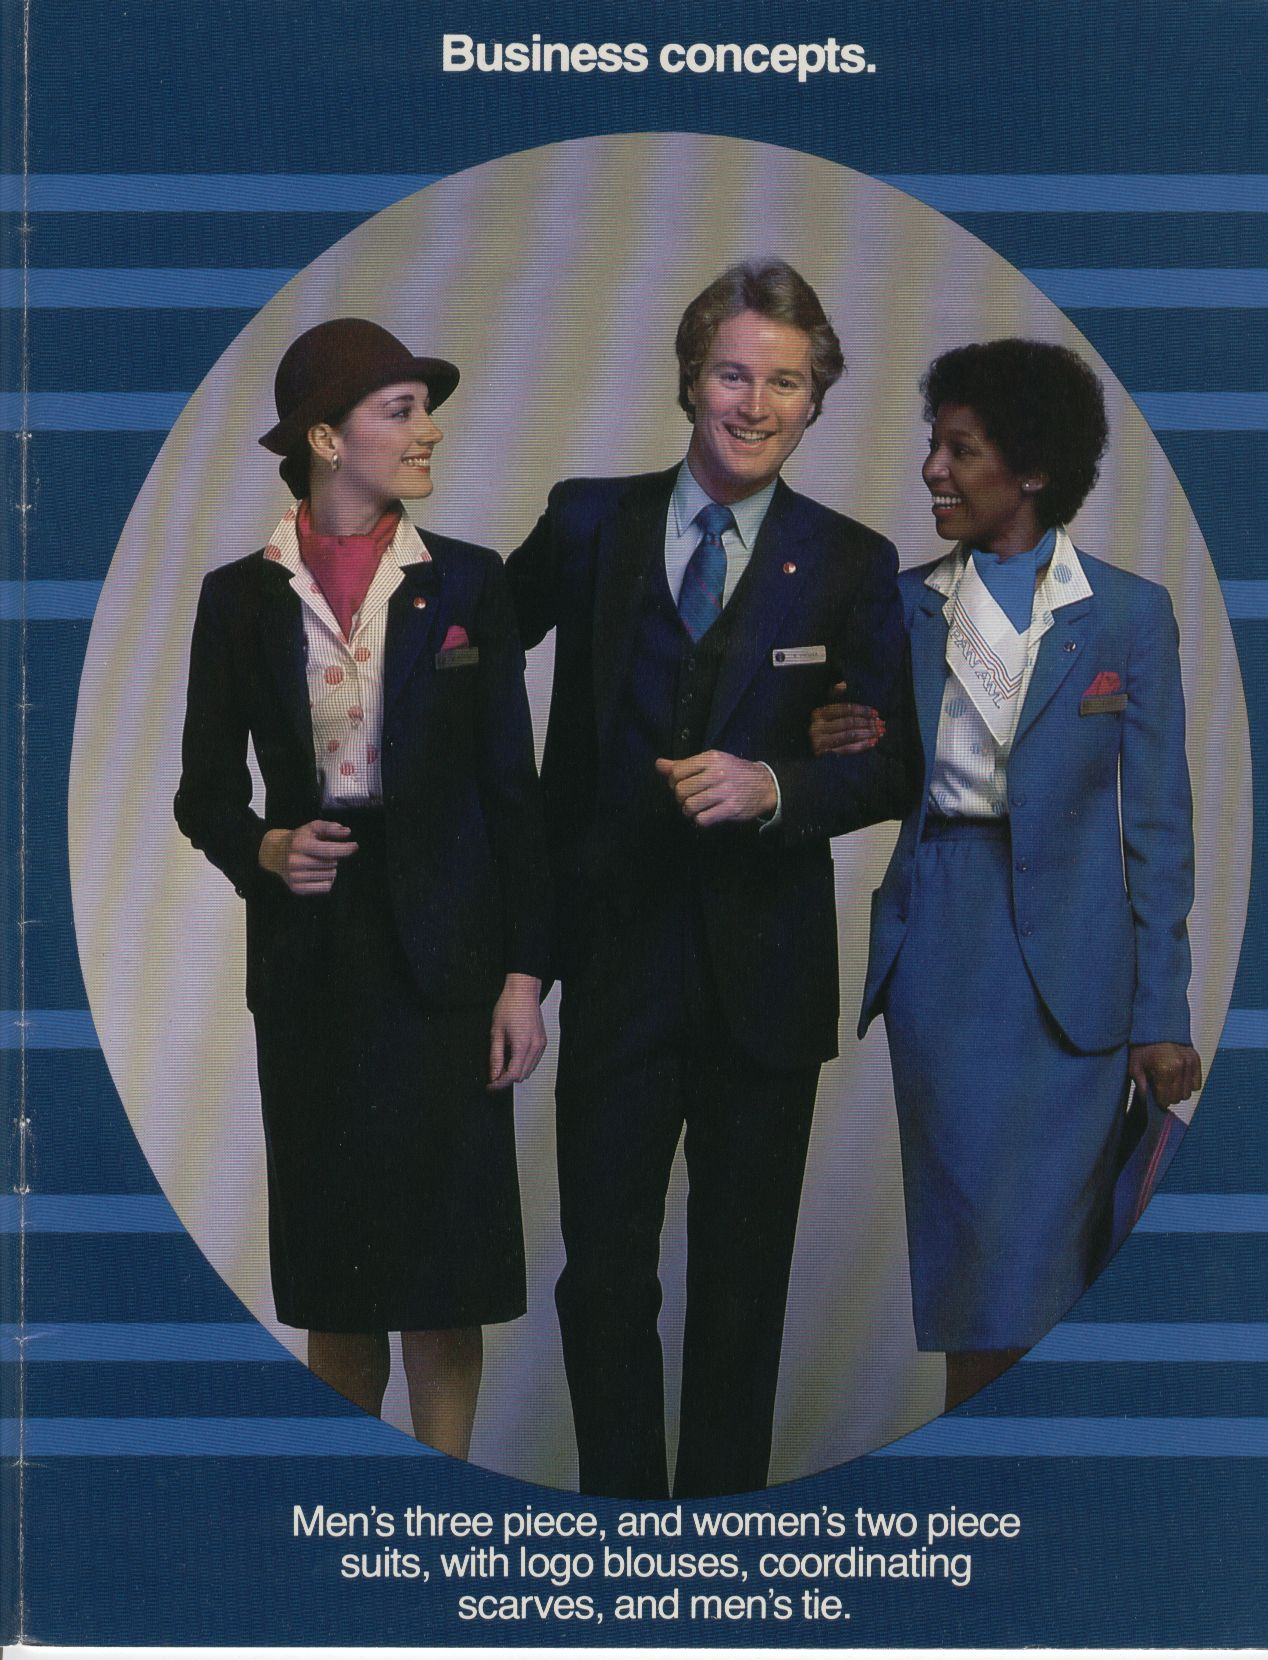 1980, July, Pan Am introduced new flight service and Passenger service (ground staff) uniforms in July of 1980.  This picture shows the  Passenger Service uniforms designed by French designer Jean Cacharel.